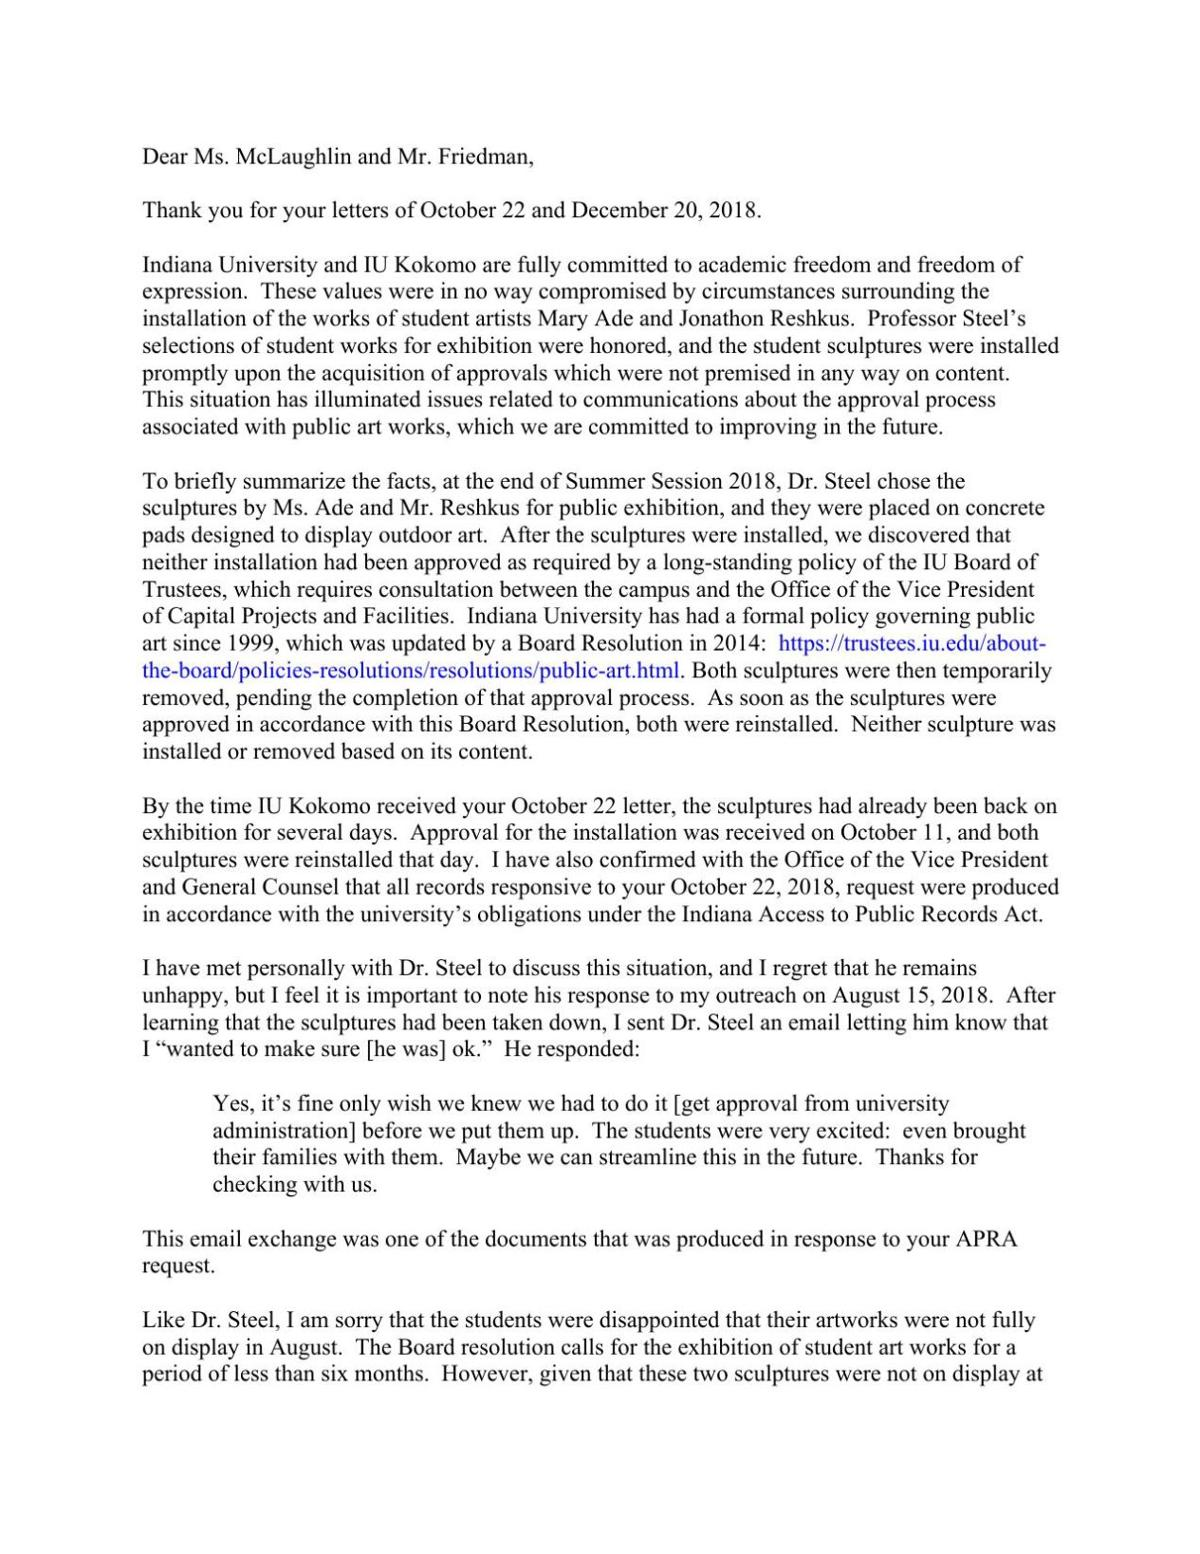 IUK letter to FIRE and PEN America